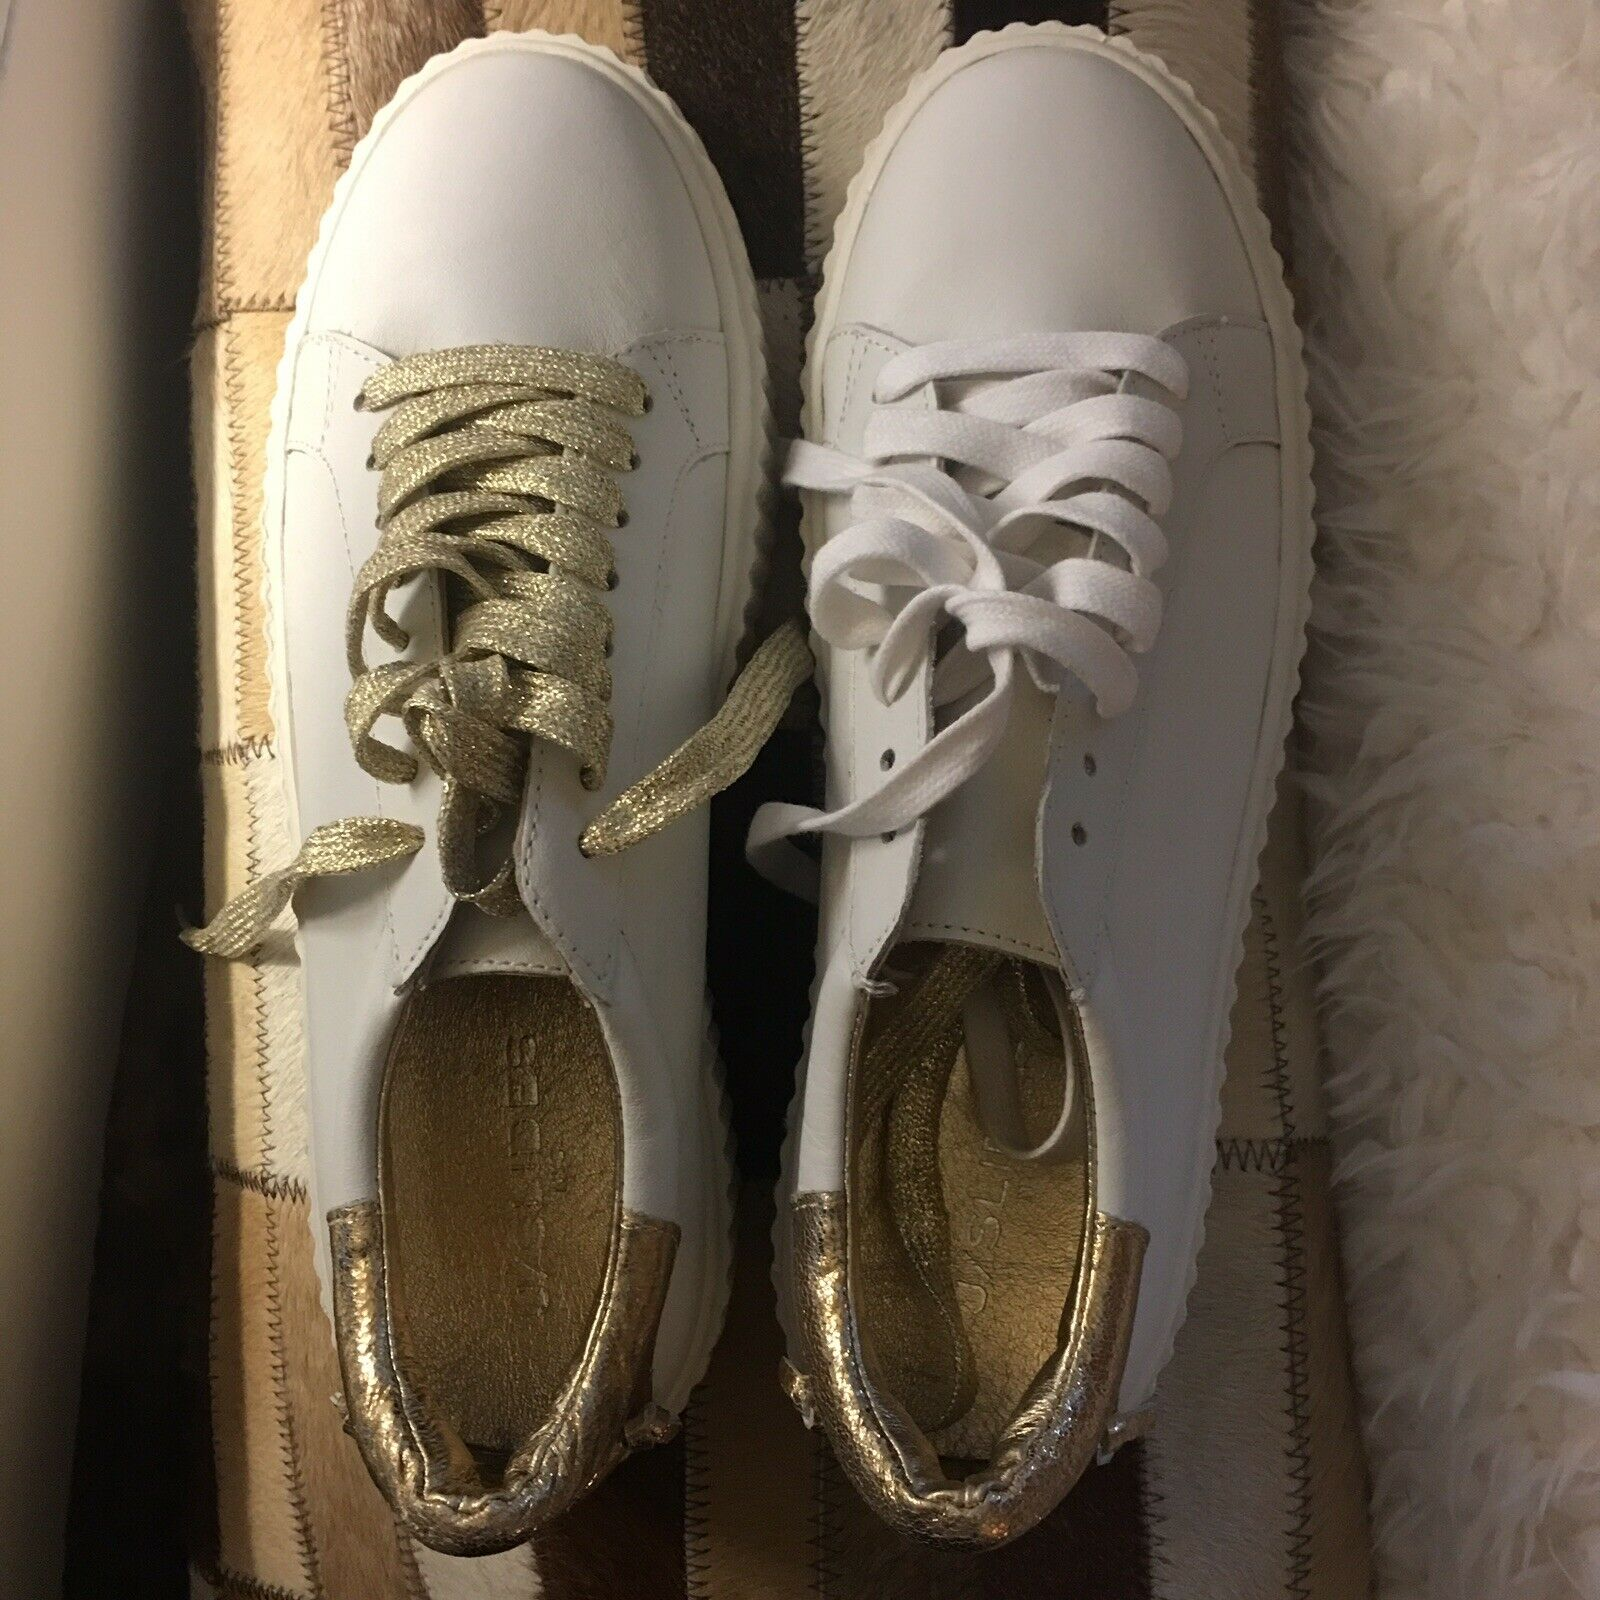 J Slides White gold Sneakers Size 8.5 With 2 Laces While & gold.. New